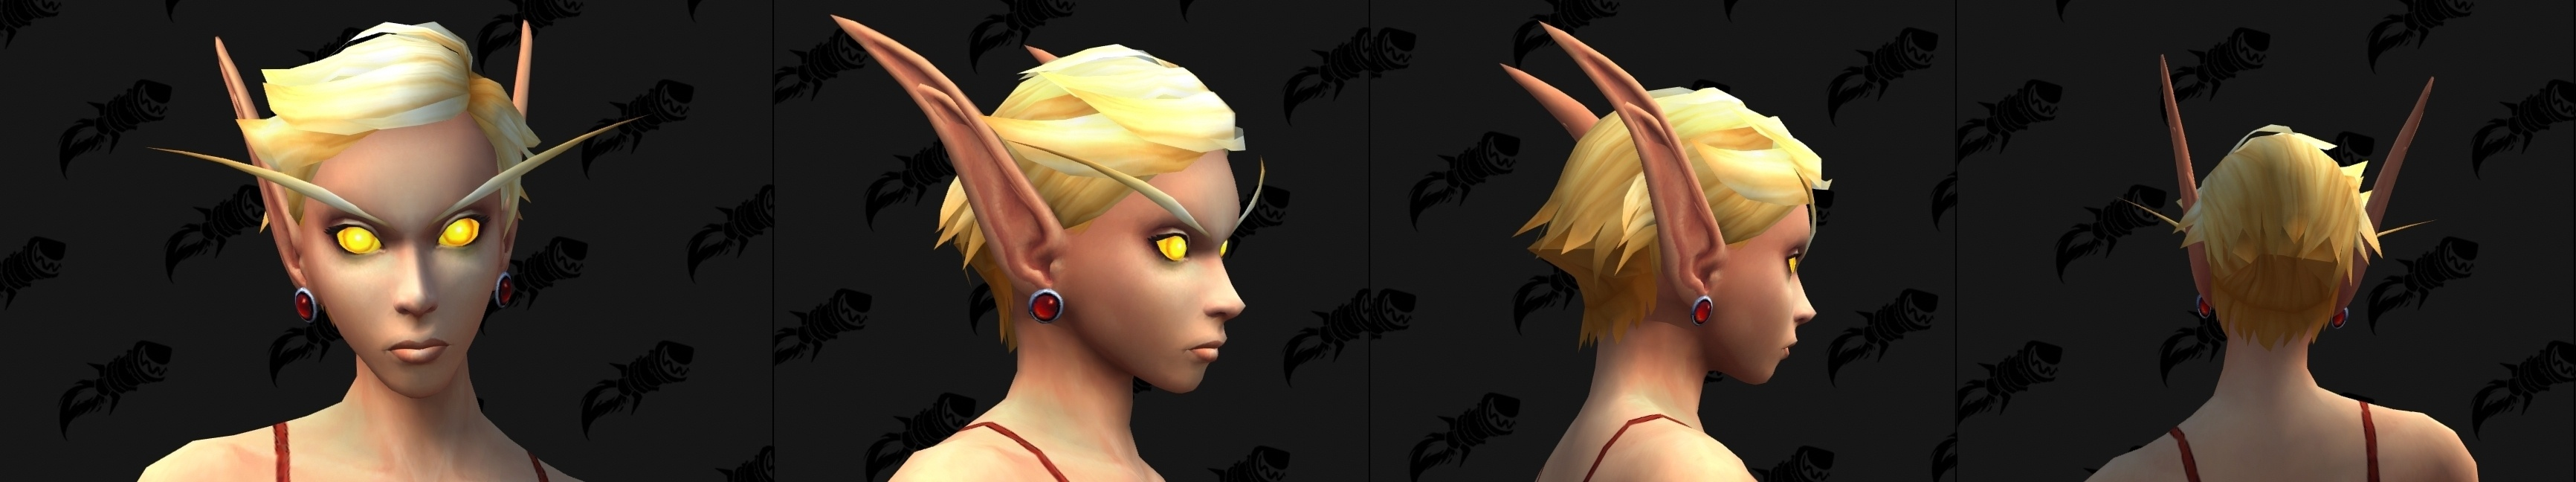 New Blood Elf Female Character Customizations - Necklaces, Hairstyles,  Earrings, Ear Size - Notícias do Wowhead